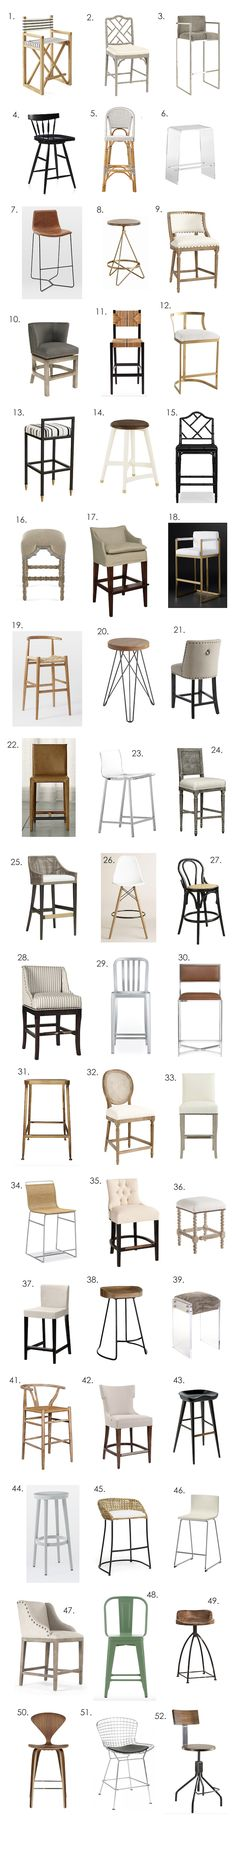 Giant Counter Stool Roundup | elements of style | Bloglovin'